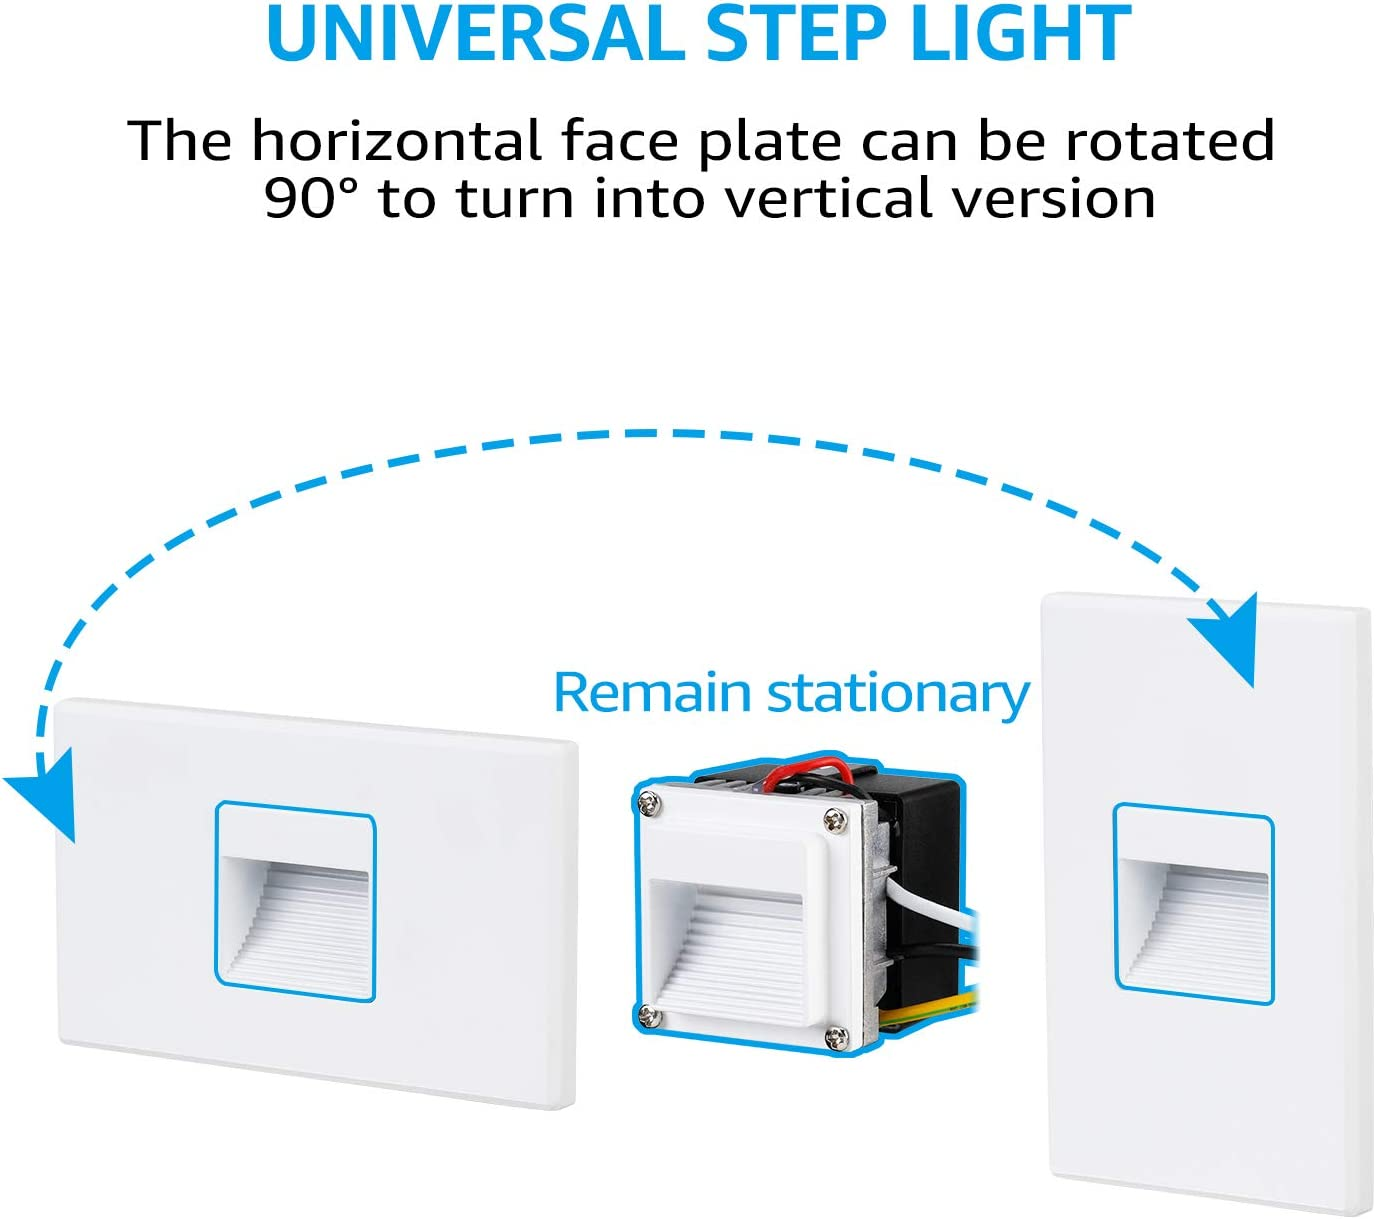 Aluminum Waterproof ETL Listed Indoor Outdoor Step Light 2.5W 125lm CRI90 Vertical-Horizontal 3000K Warm White TORCHSTAR 120V Dimmable LED Universal Oil Rubbed Bronze 5-Year Warranty Pack of 3